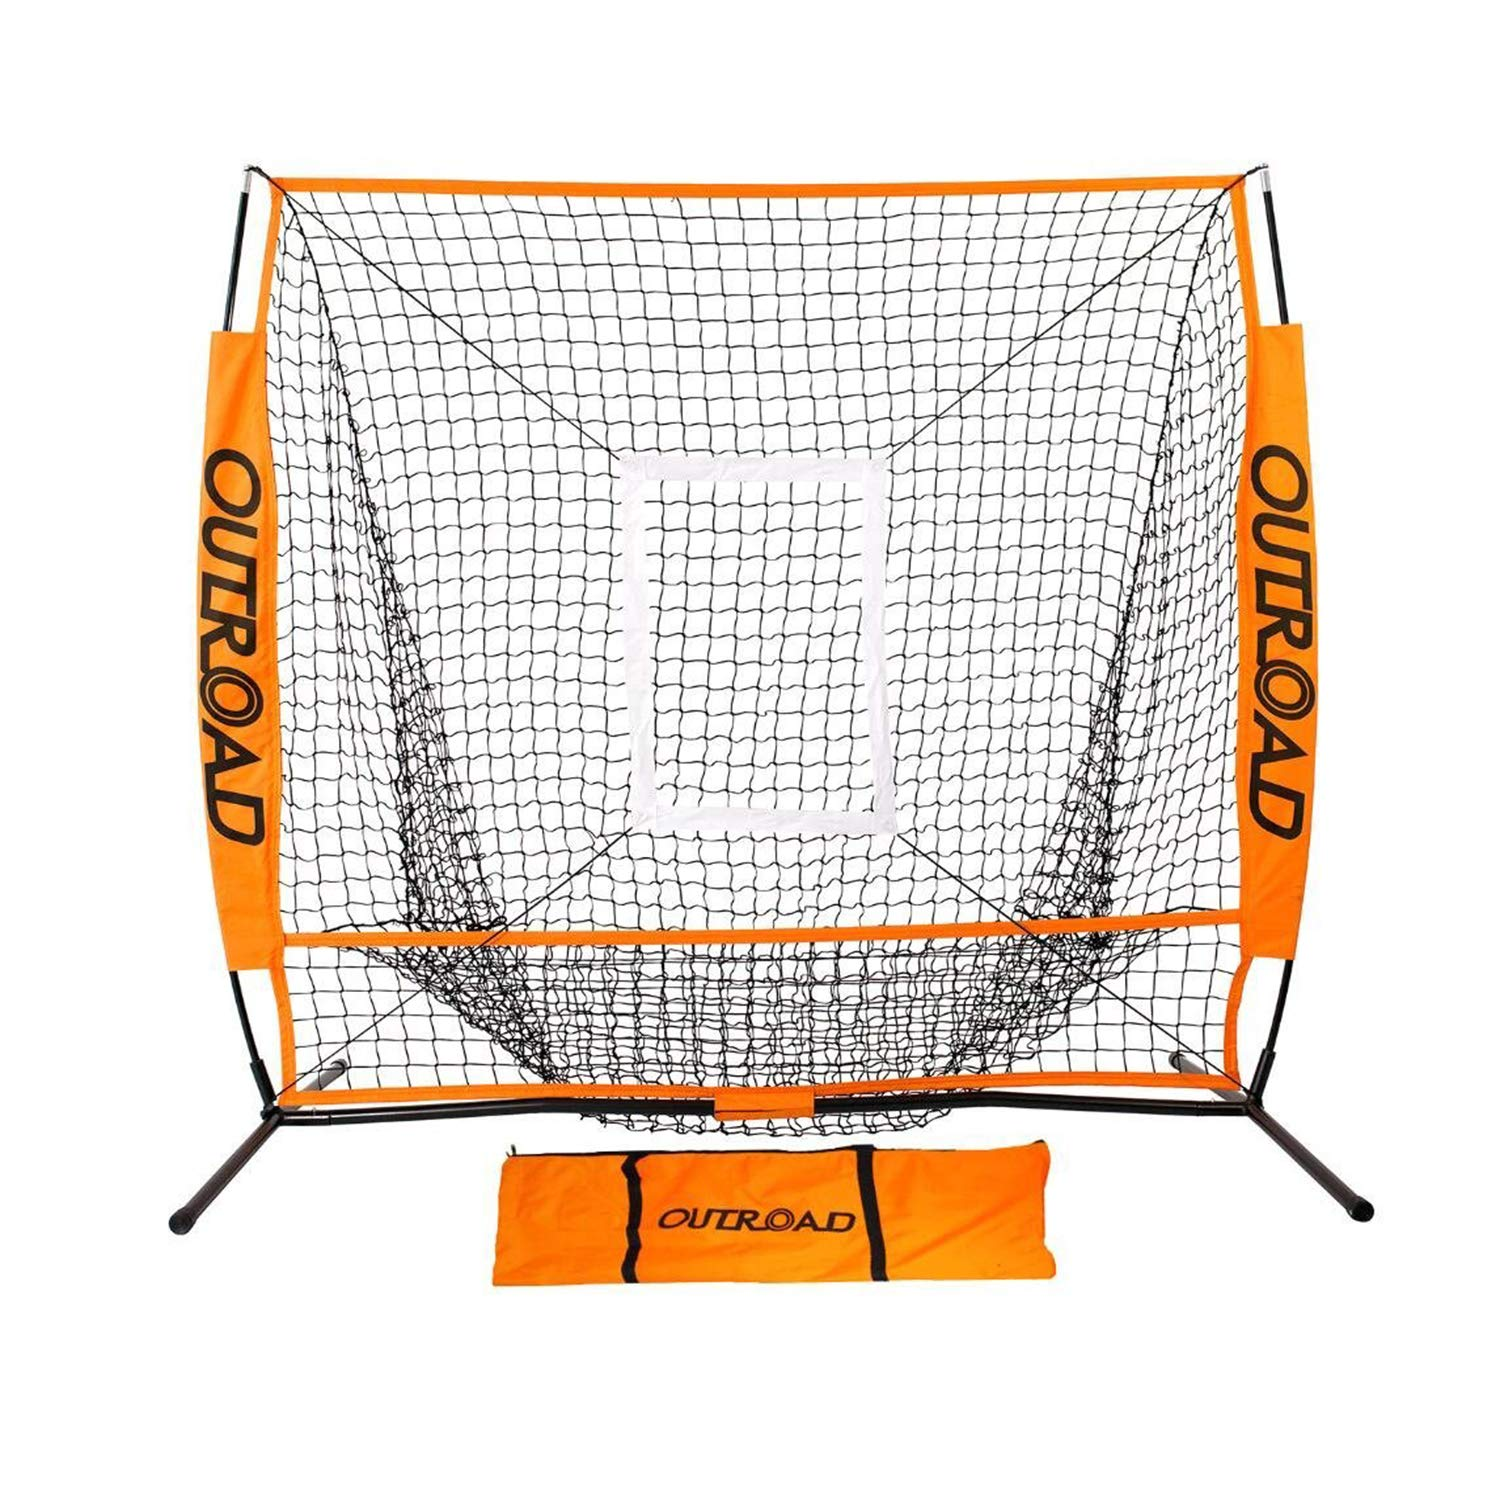 Outroad Baseball Nets Batting Pitching 5 X 5 Portable Practice